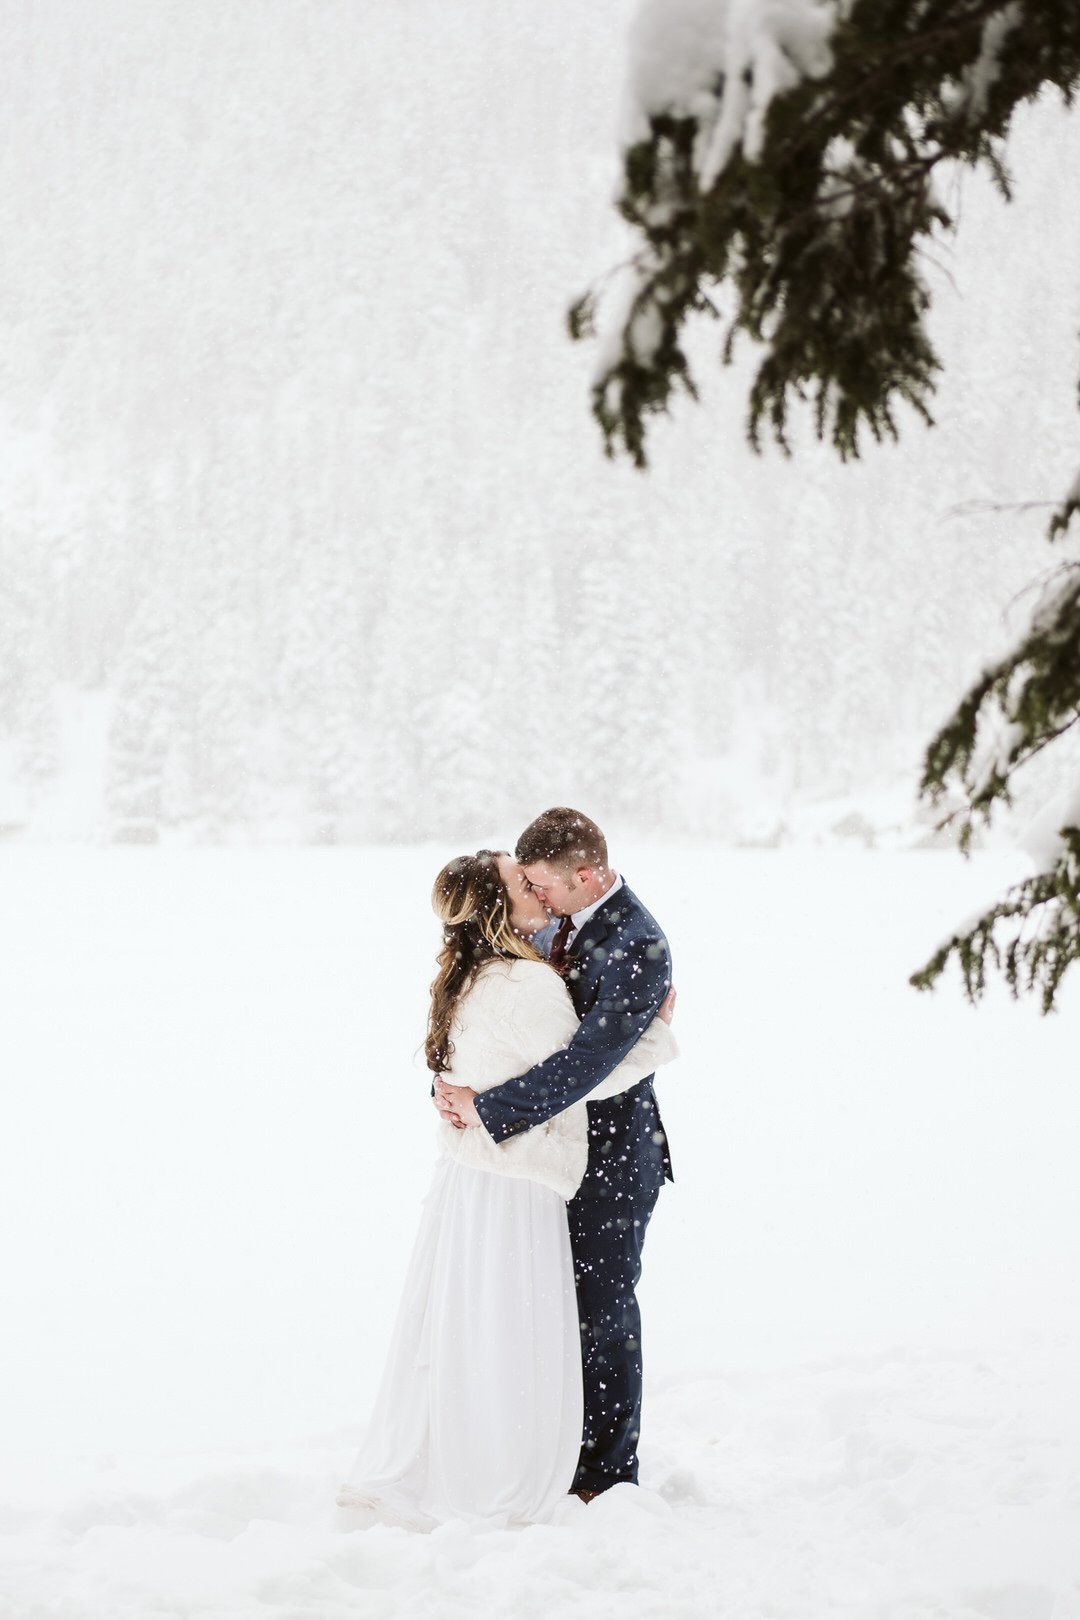 Winter elopement photos at Bear Lake in RMNP Colorado